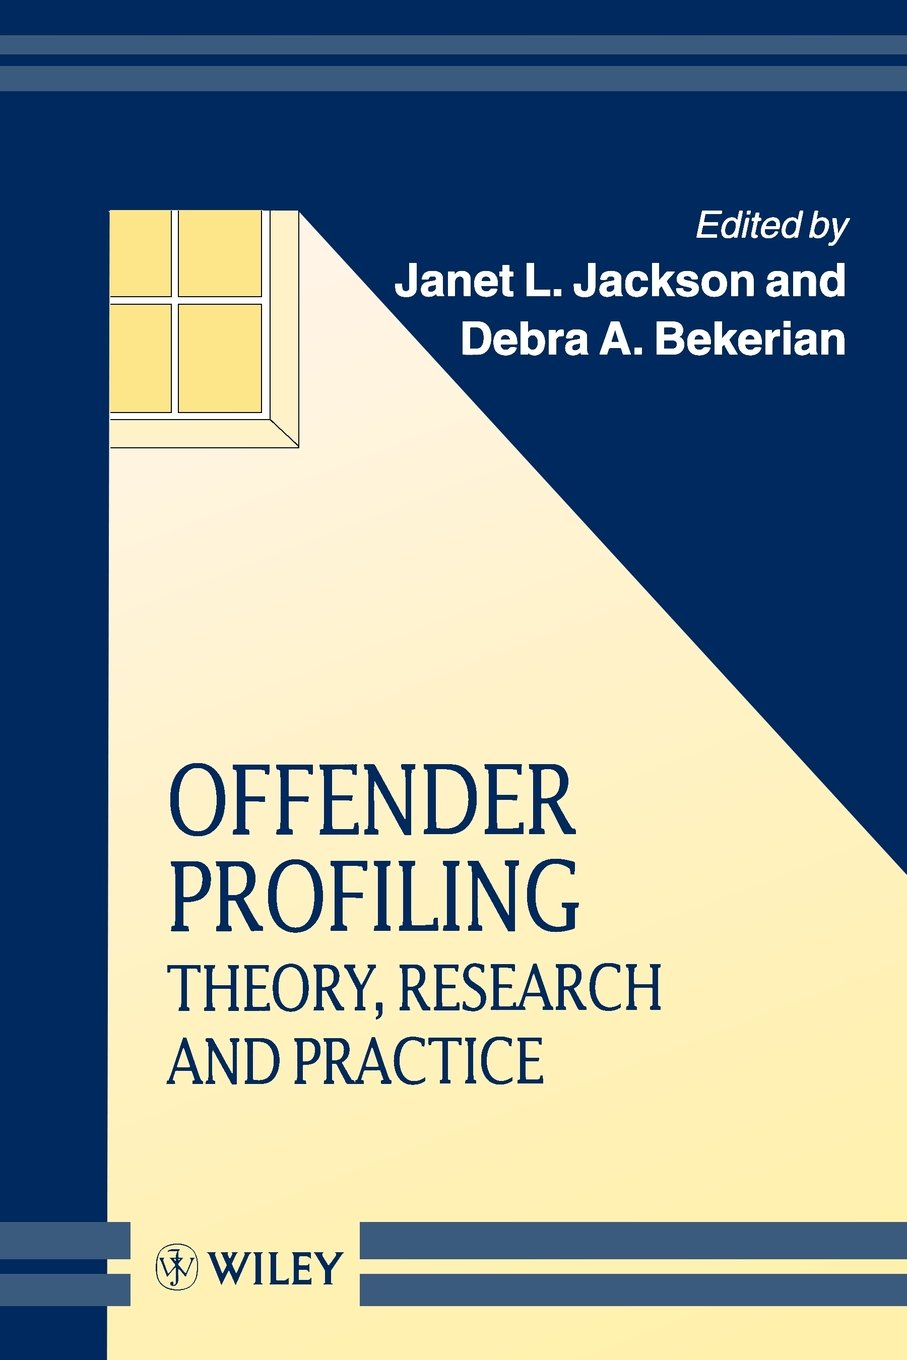 offender profiling theory research and practice wiley series in offender profiling theory research and practice wiley series in psychology of crime policing and law co uk janet l jackson